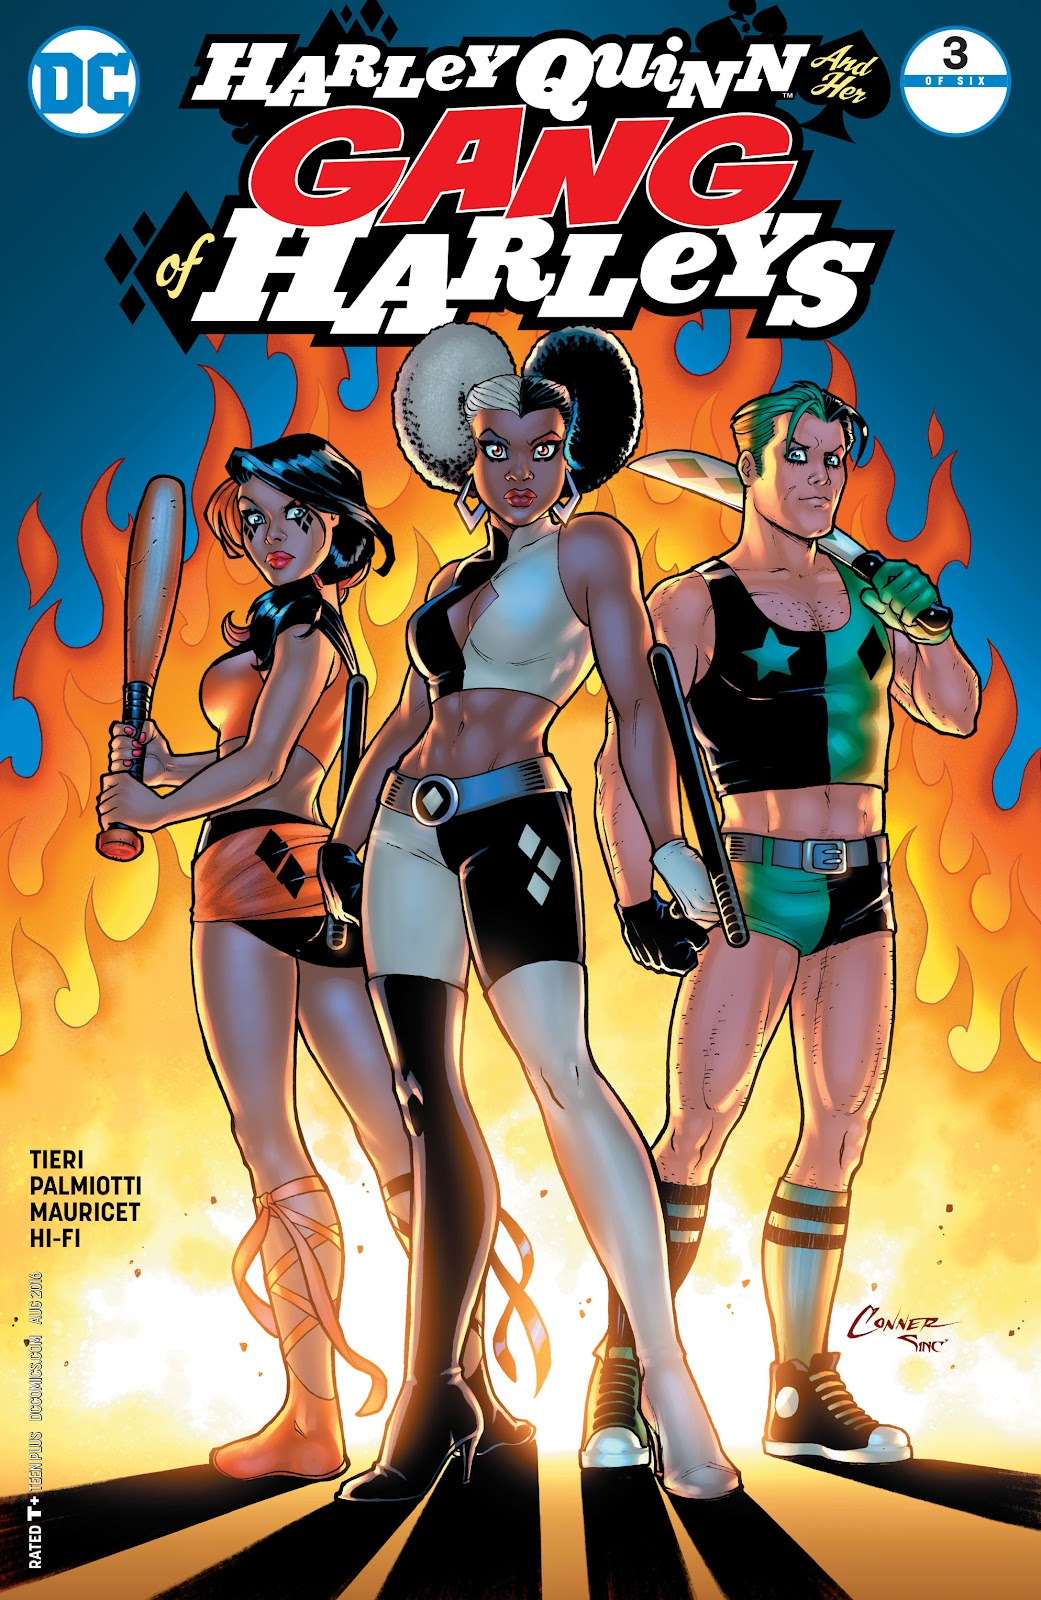 harley quinn and her gang of harleys issue 3 read full comics